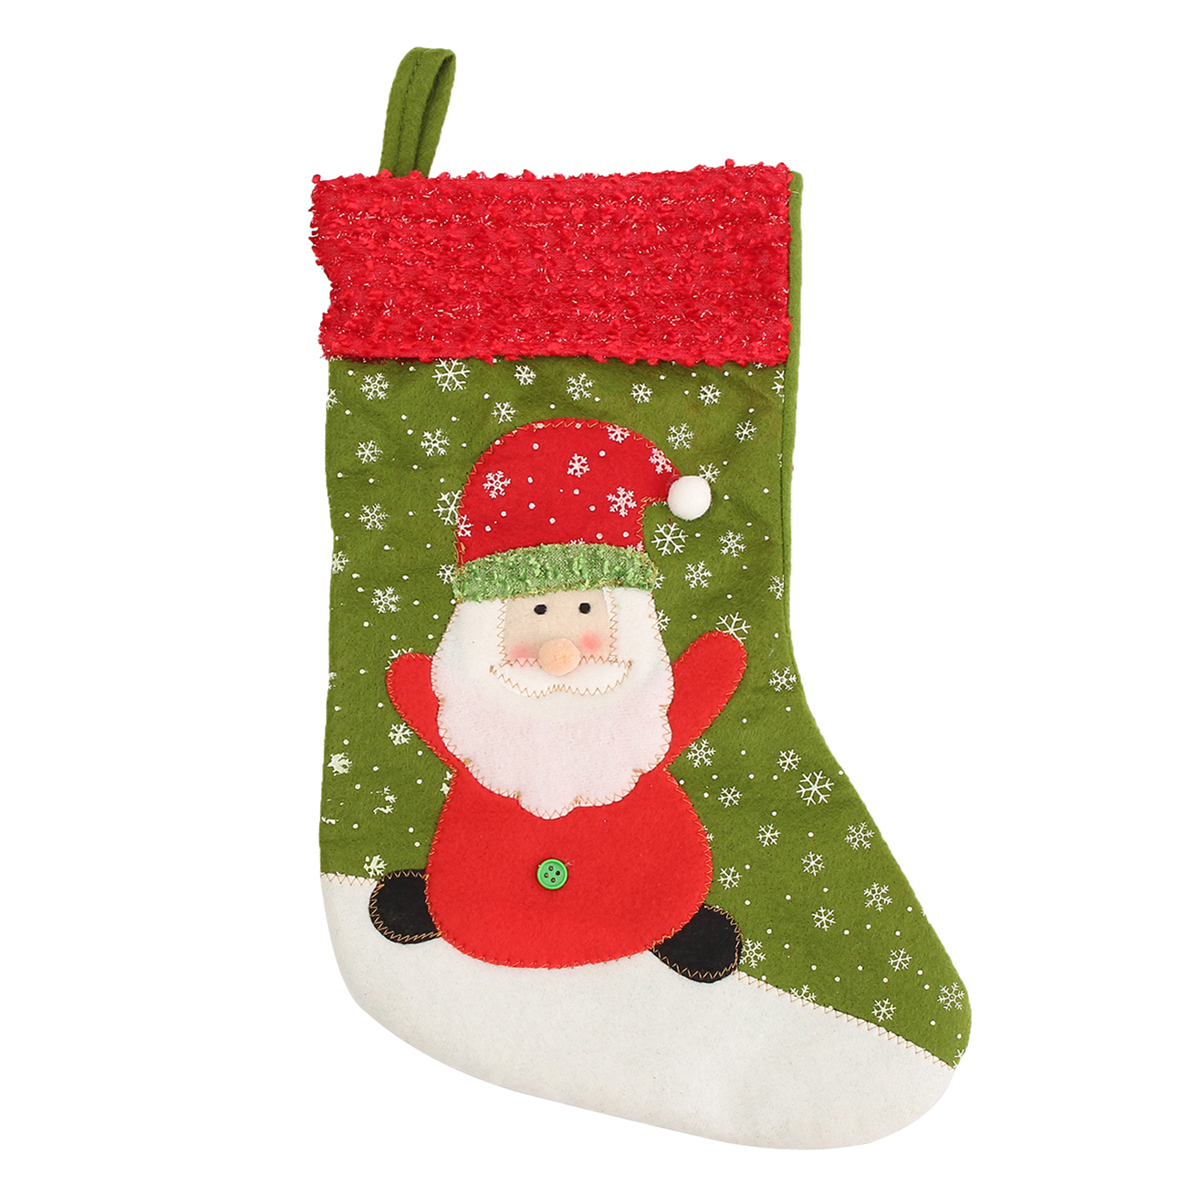 Christmas Gift Socks Bags Santa Claus Snowman Fabric Hanging Stockings Tree Decoration